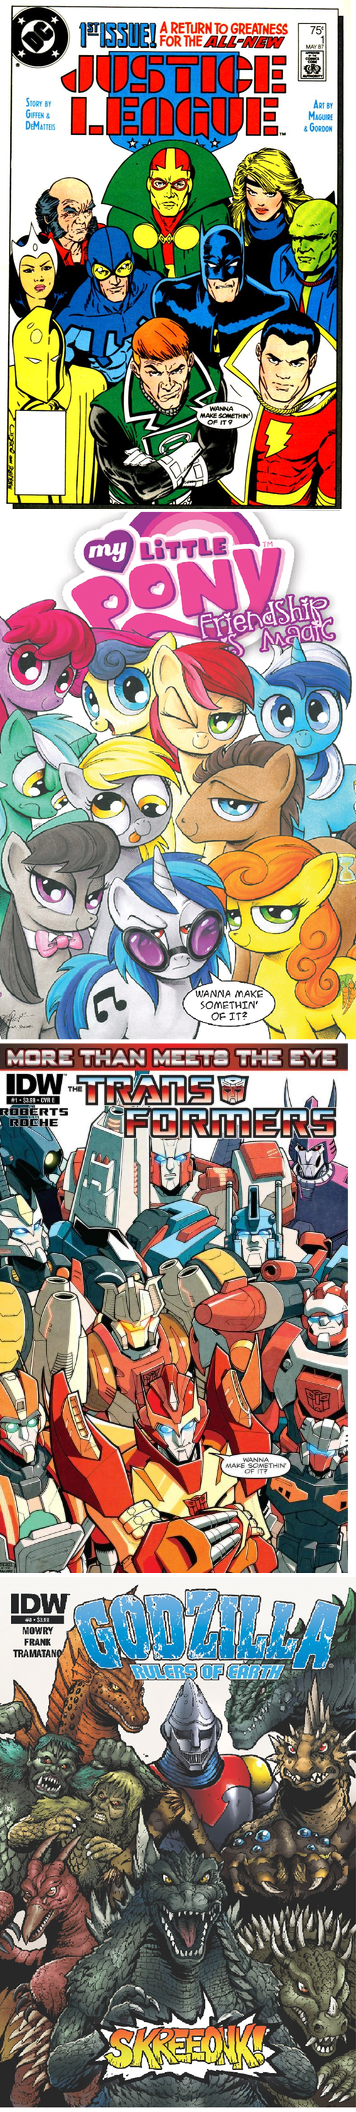 transformers covers off the page justice league MLP comic book - 7862597376